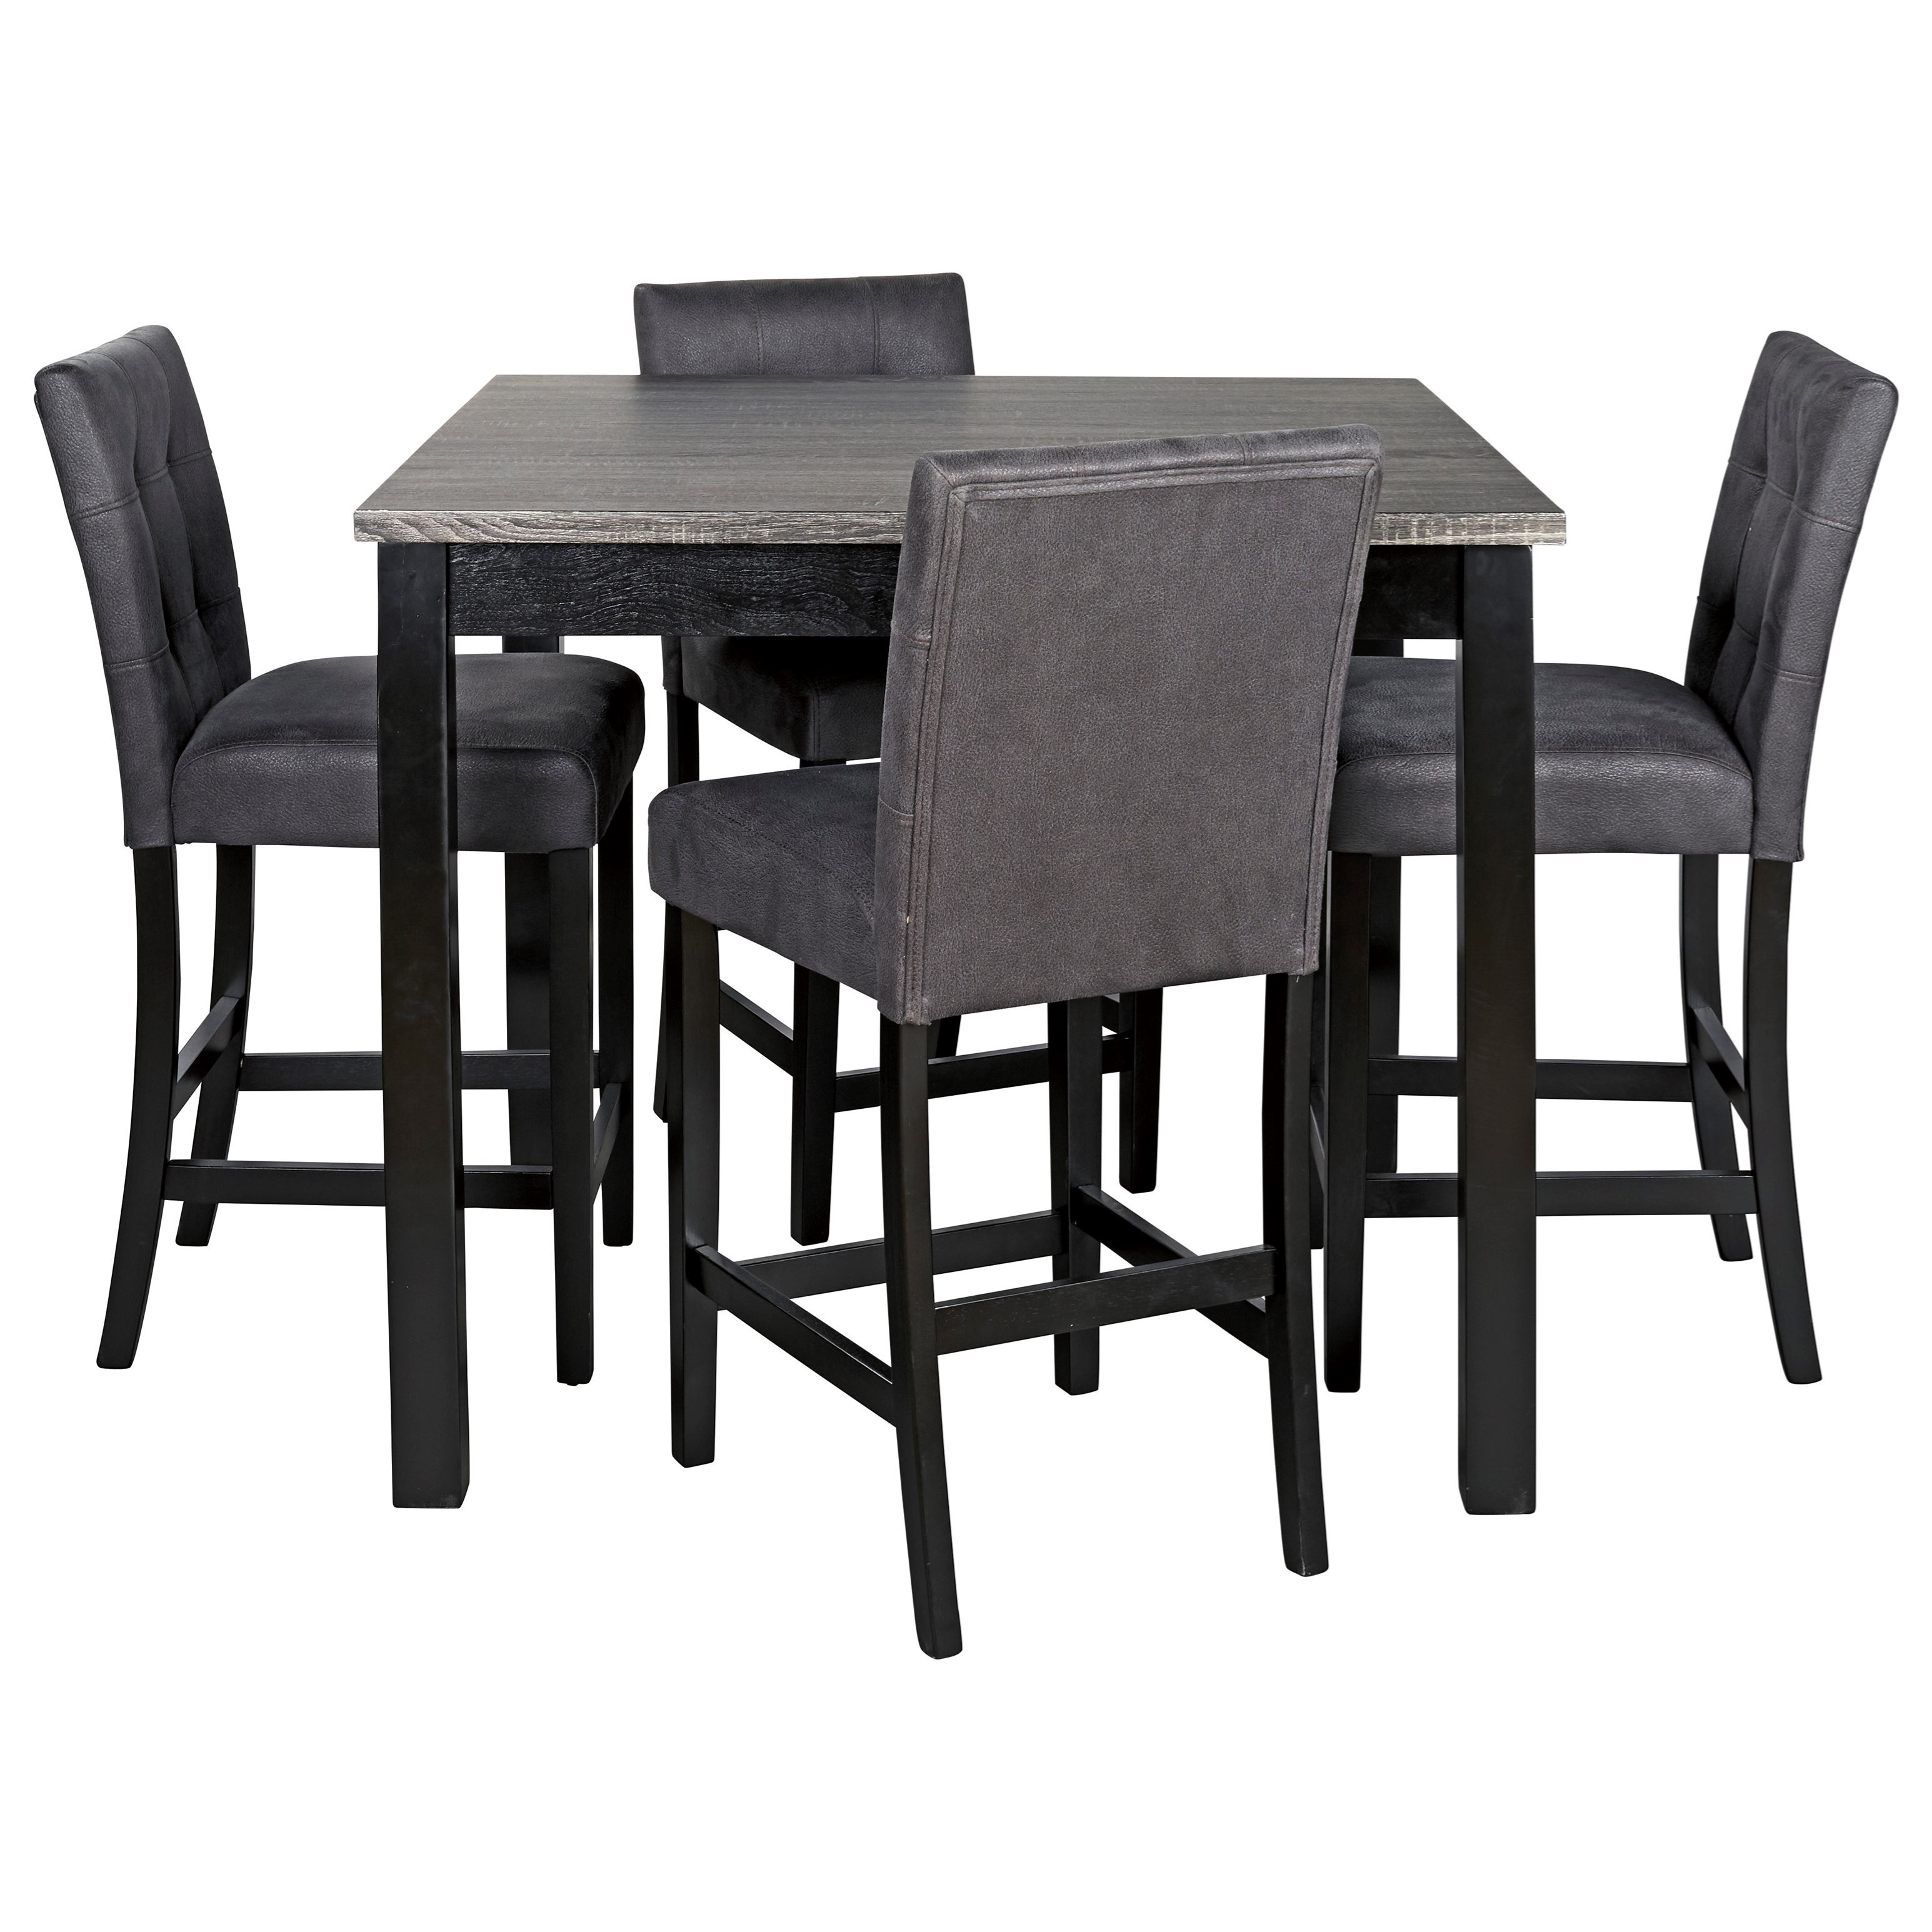 Ashley Signature Design Garvine D161 223 5 Piece Square Counter Height Dining Room Table Set With Bar Stools Dunk Bright Furniture Pub Table And Stool Sets